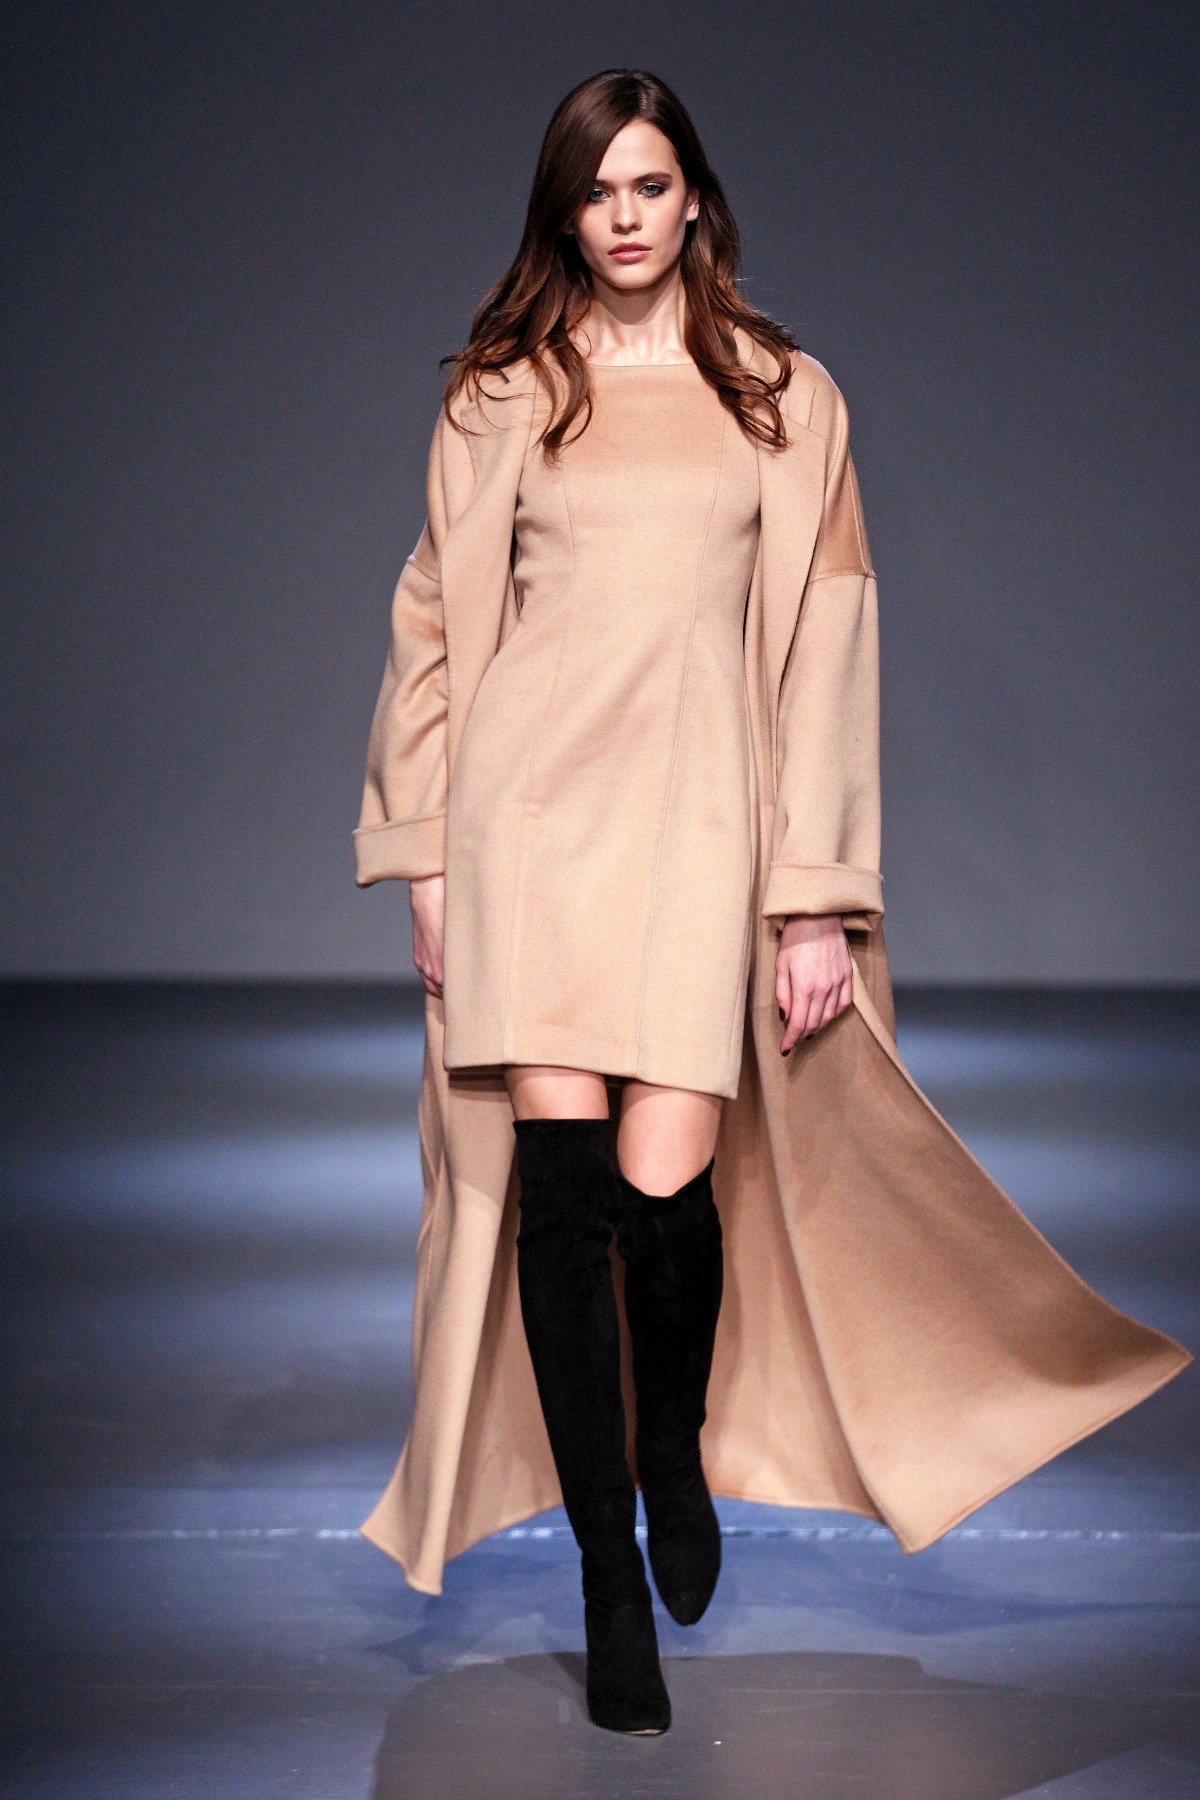 Pamella Roland Fall 2018 Runway I Camel Cashmere Coat and Sheath Dress #NYFW #FallFashion